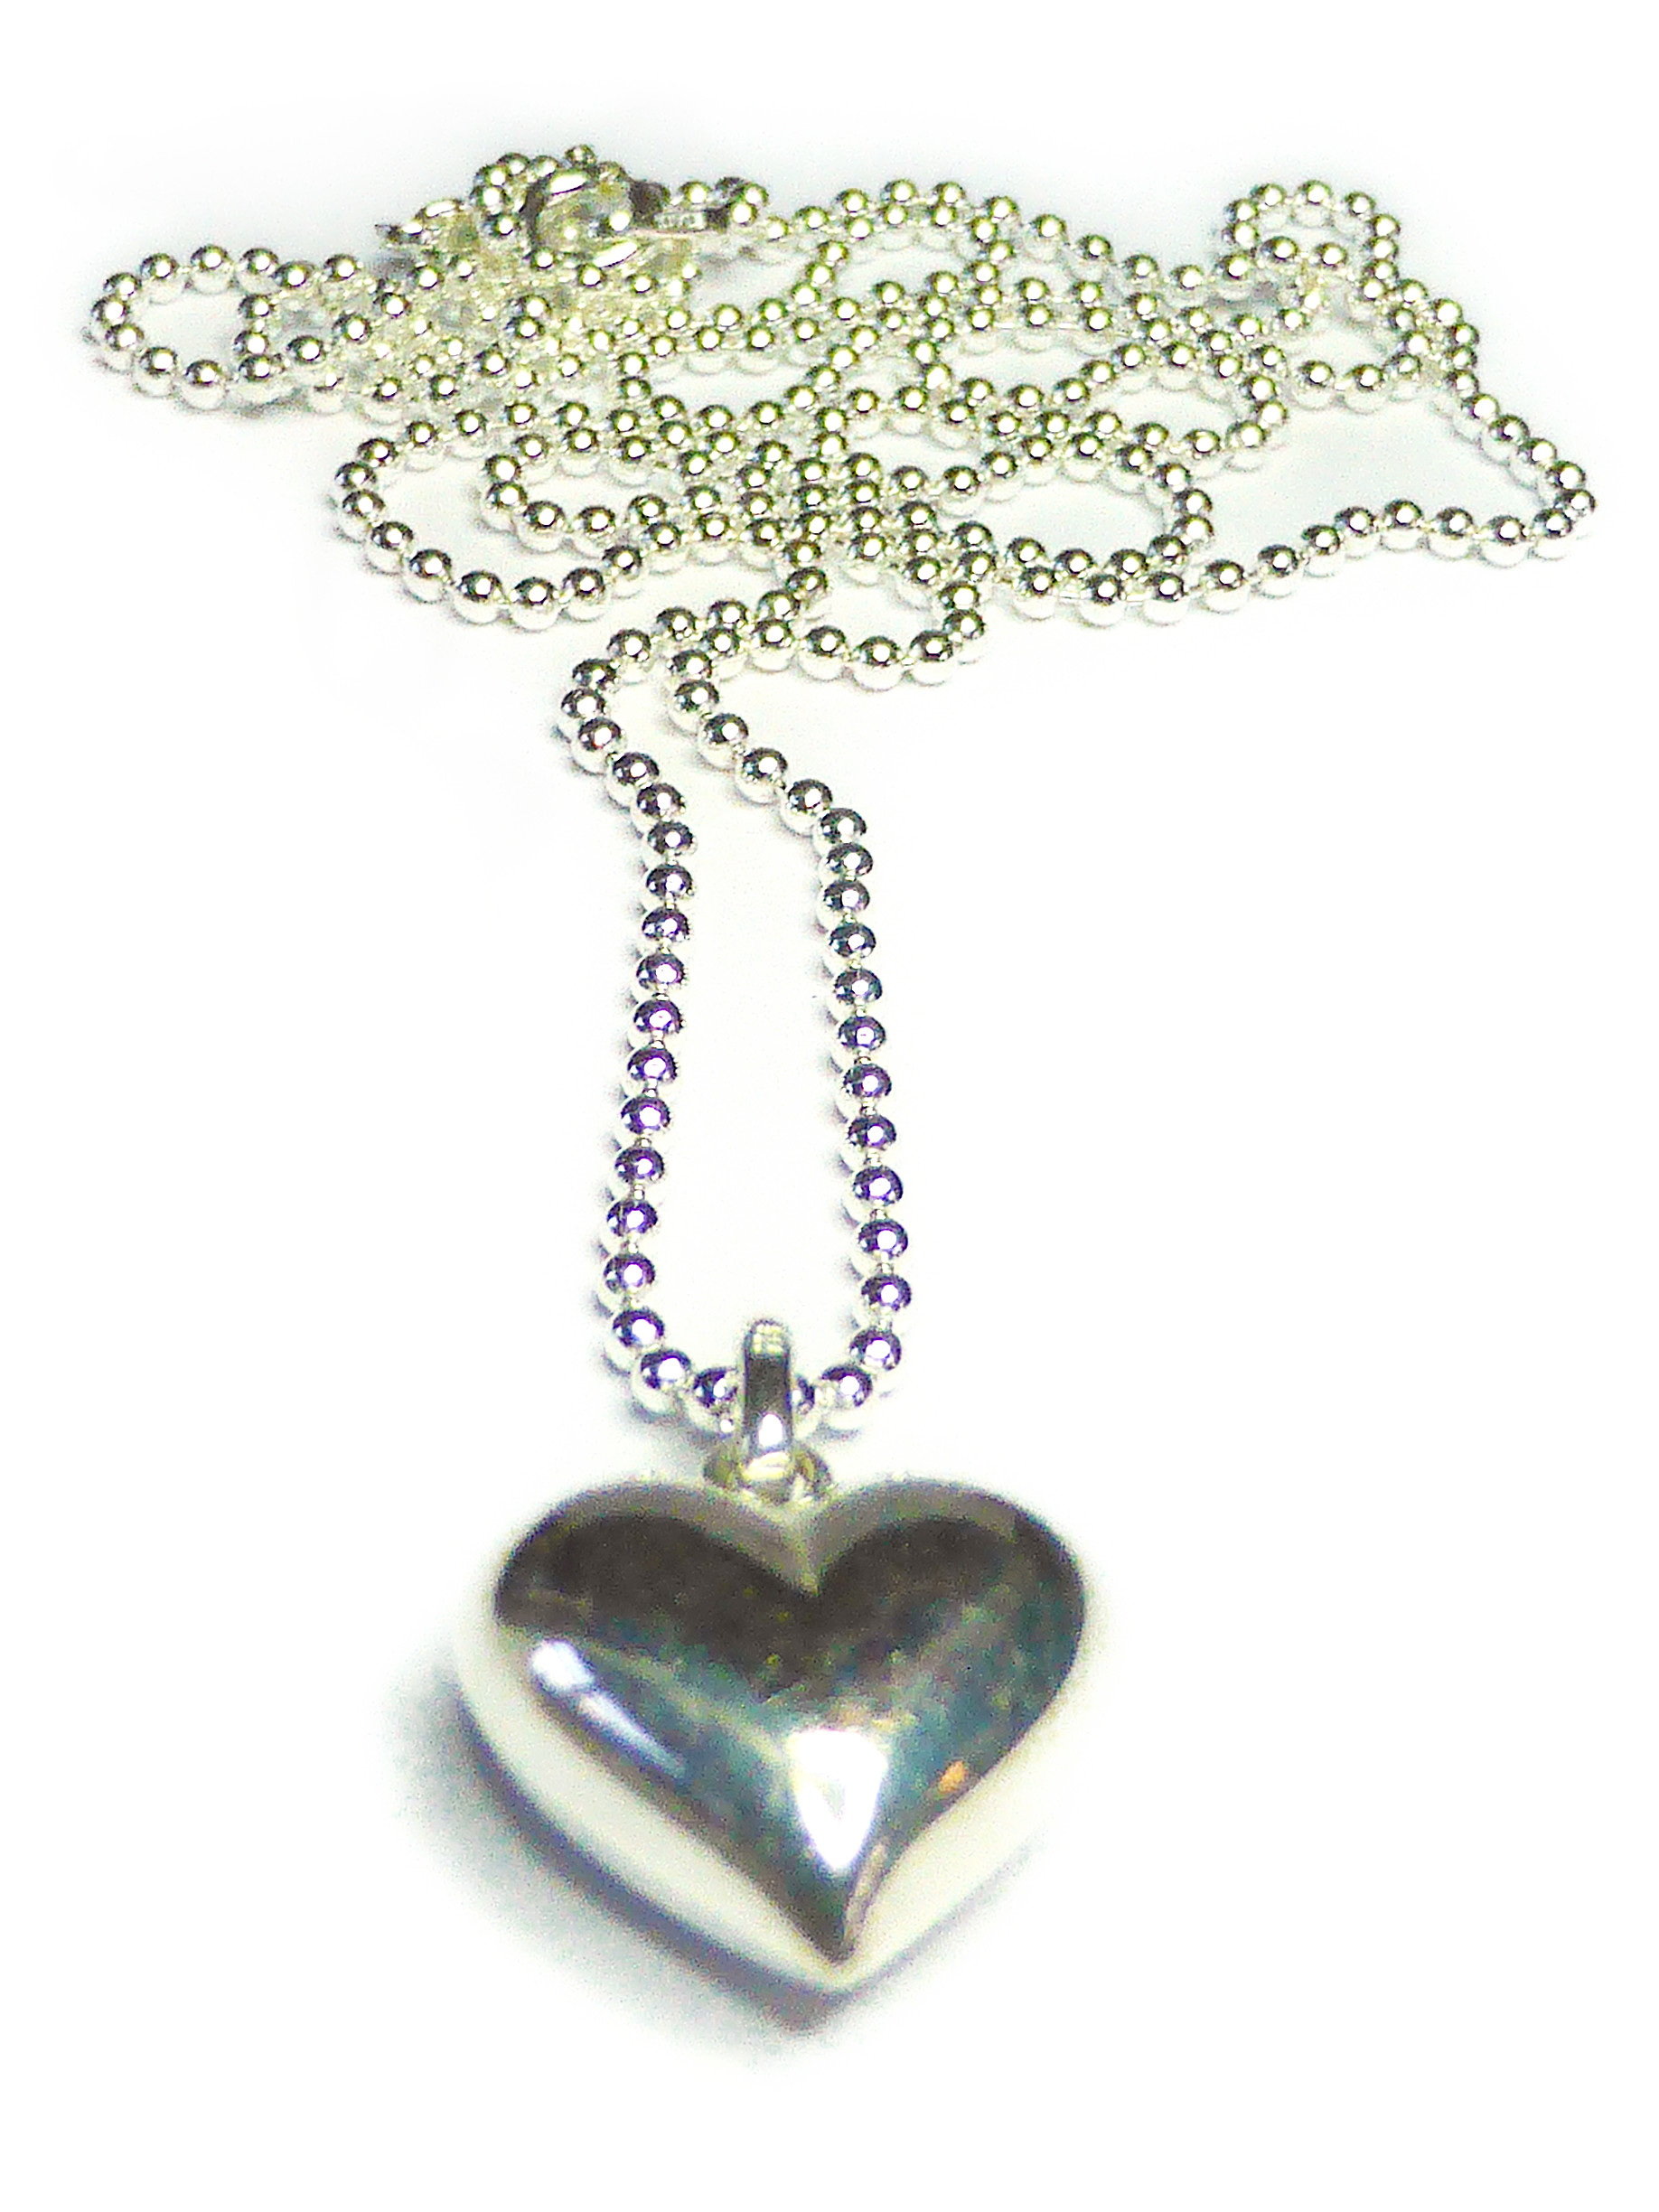 Ball Chain Pendant with Puffed Heart from Jacy & Jools Cheshire